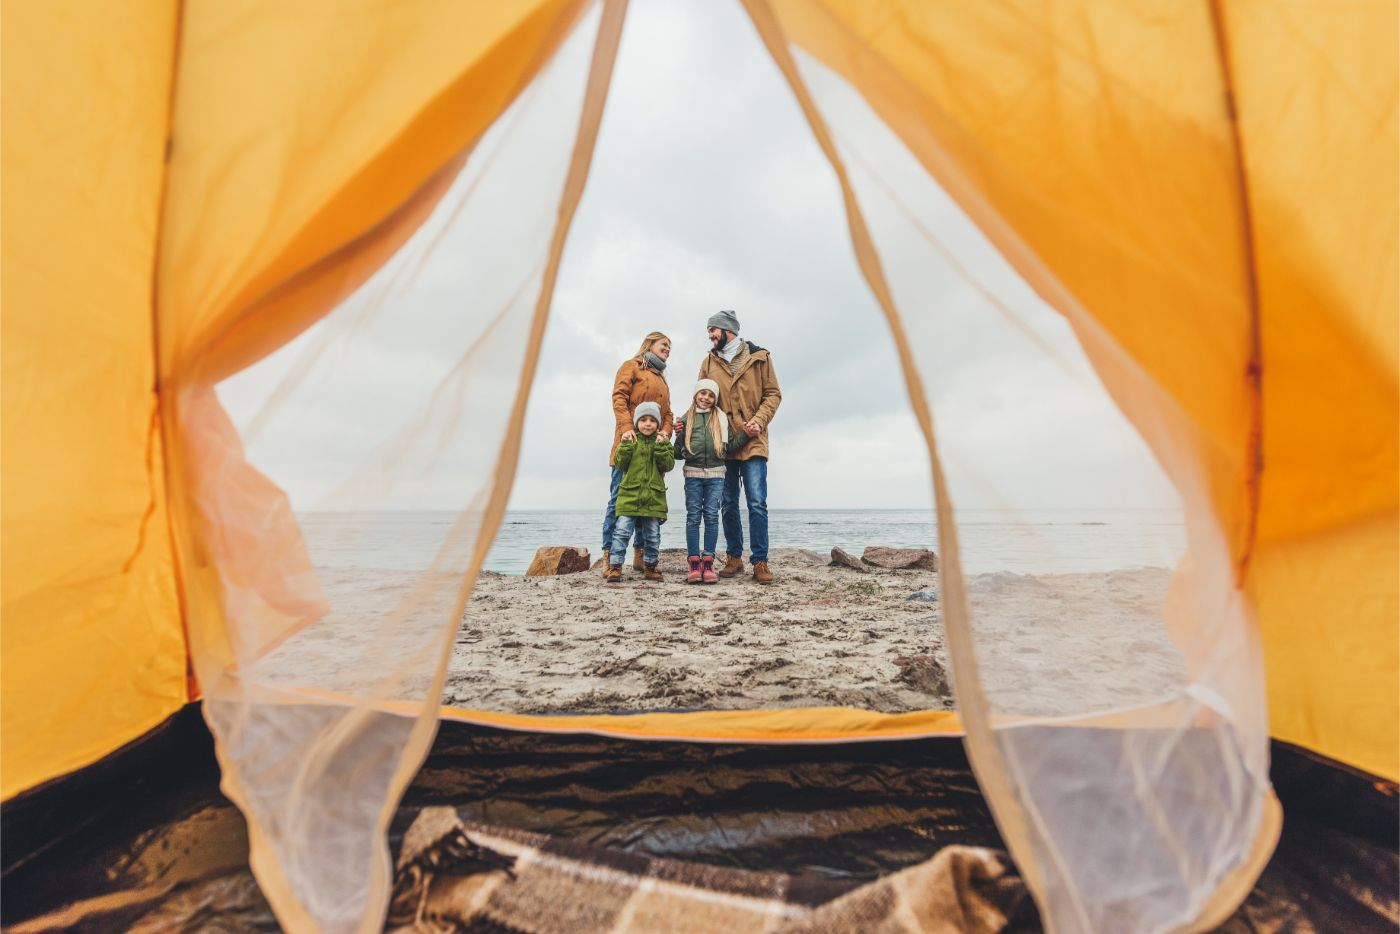 A family backpacking and camping on the beach